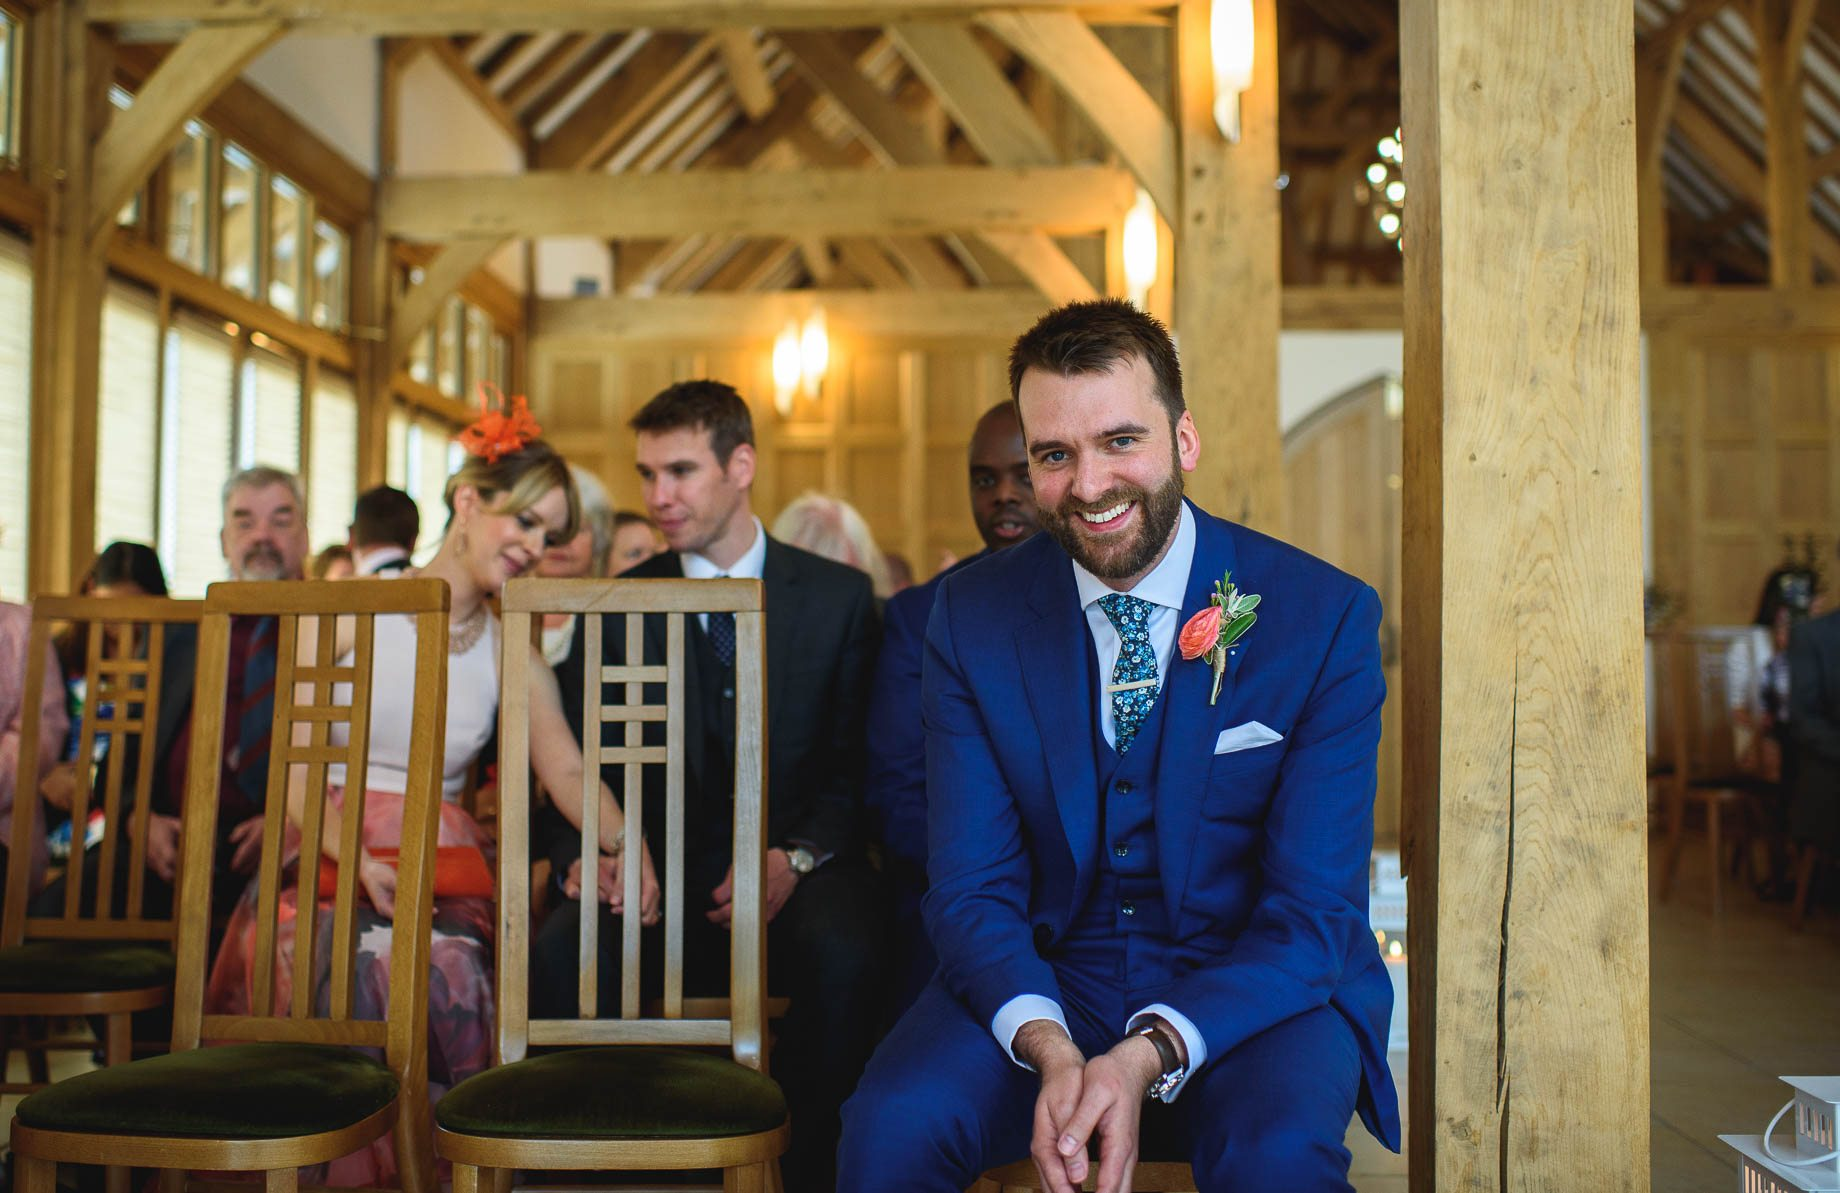 Rivervale Barn wedding photography by Guy Collier - Claire and Simon (51 of 133)